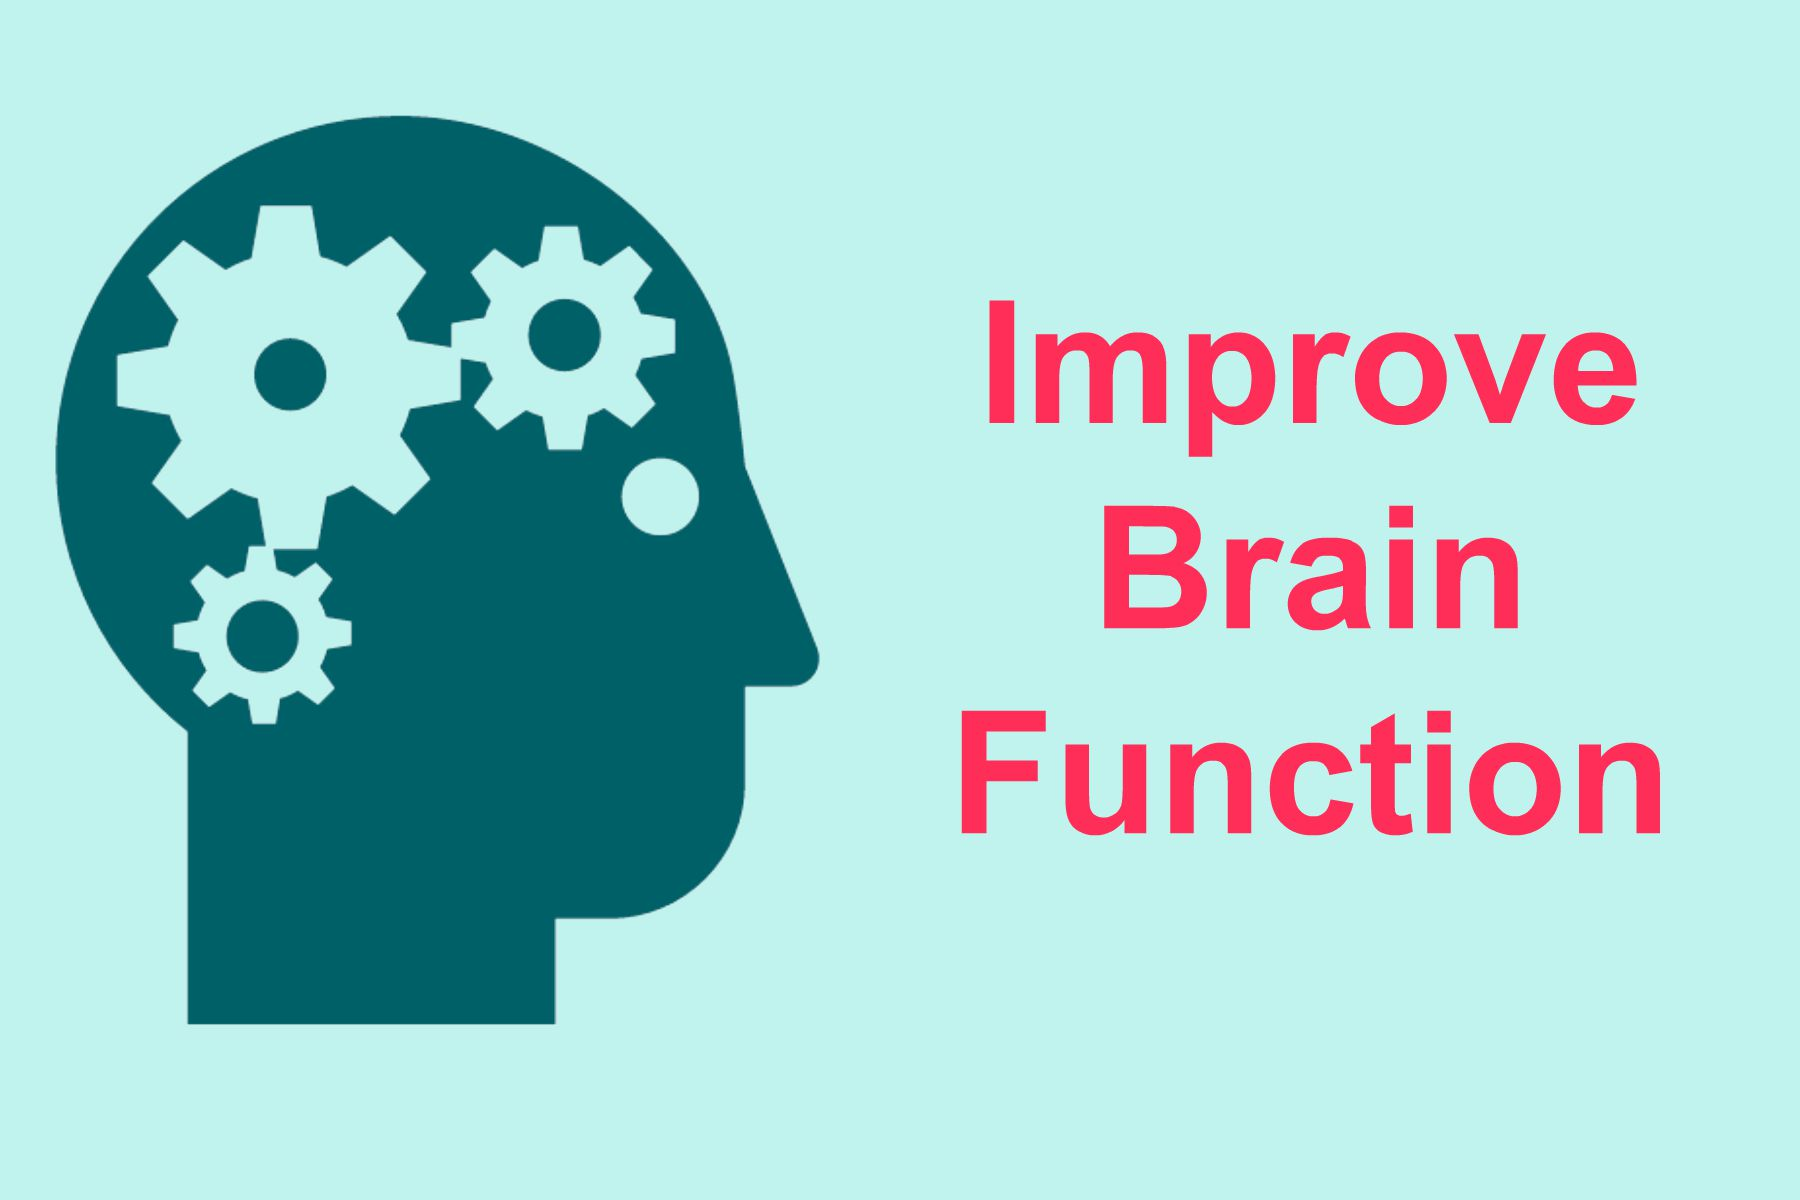 Best Ways To Improve Brain Function